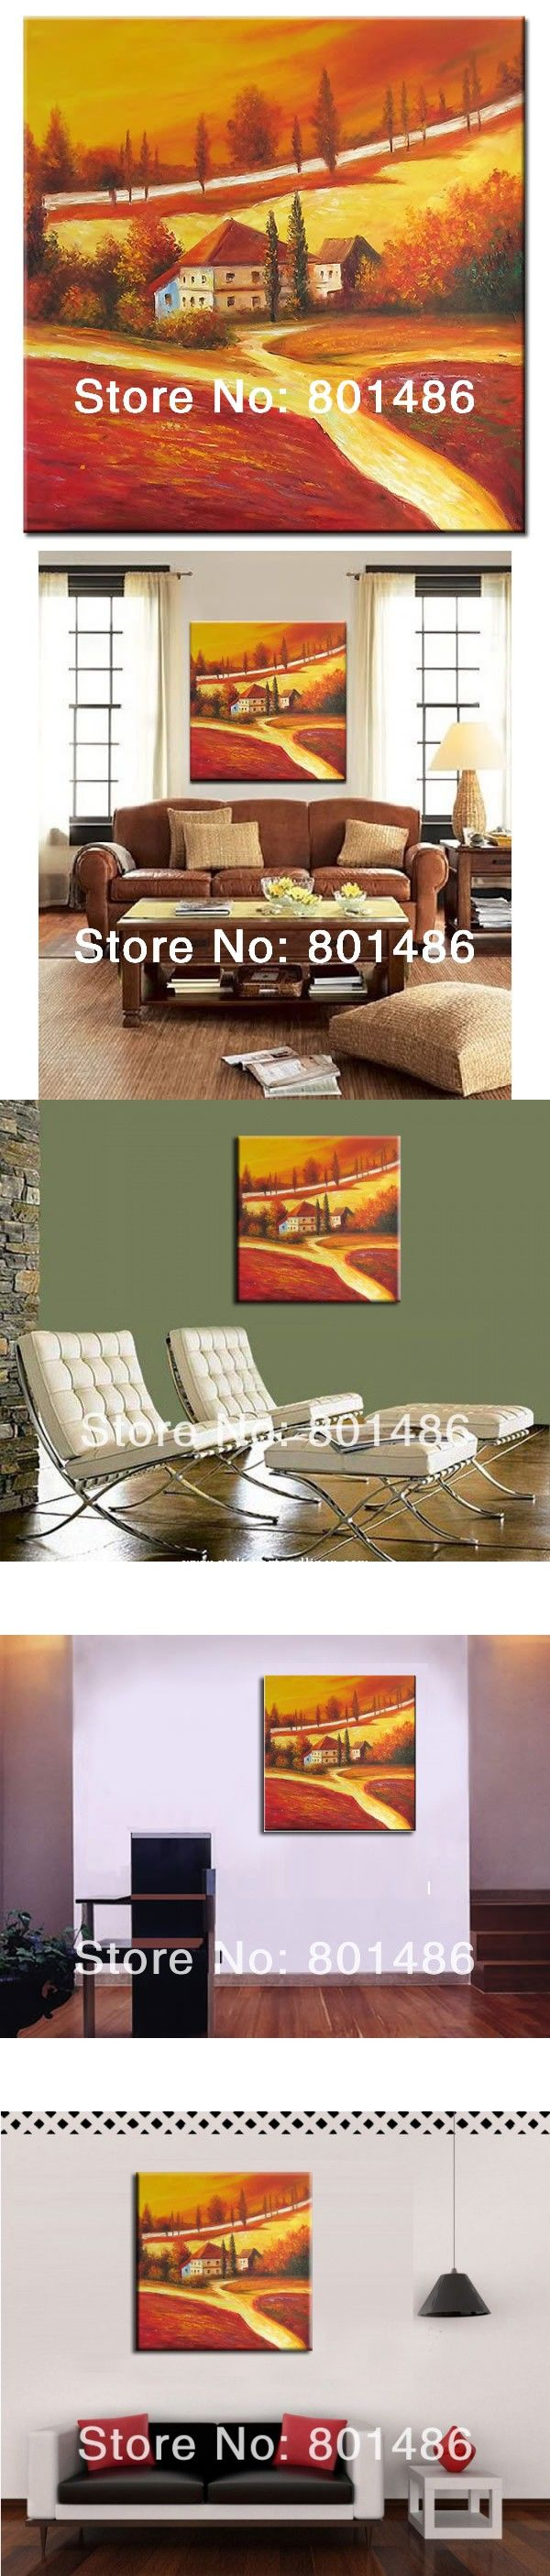 Free shipping! Poppies field landscape oil painting on canvas,high-quality abstract modern home decoration $55.9